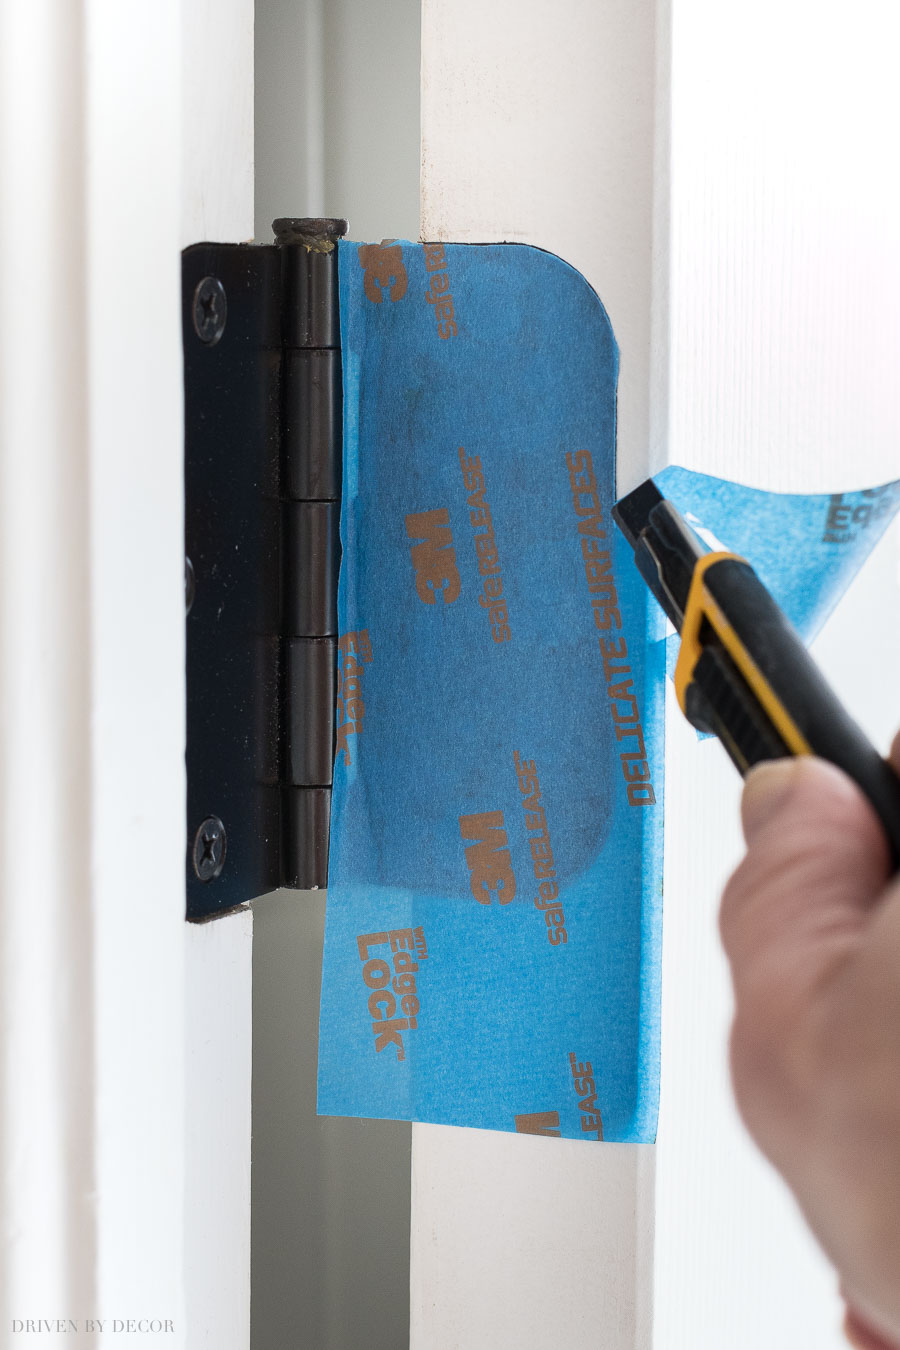 To prep your door for painting, cover hinges with painter's tape and use a razor cut away extra tape by tracing around them!